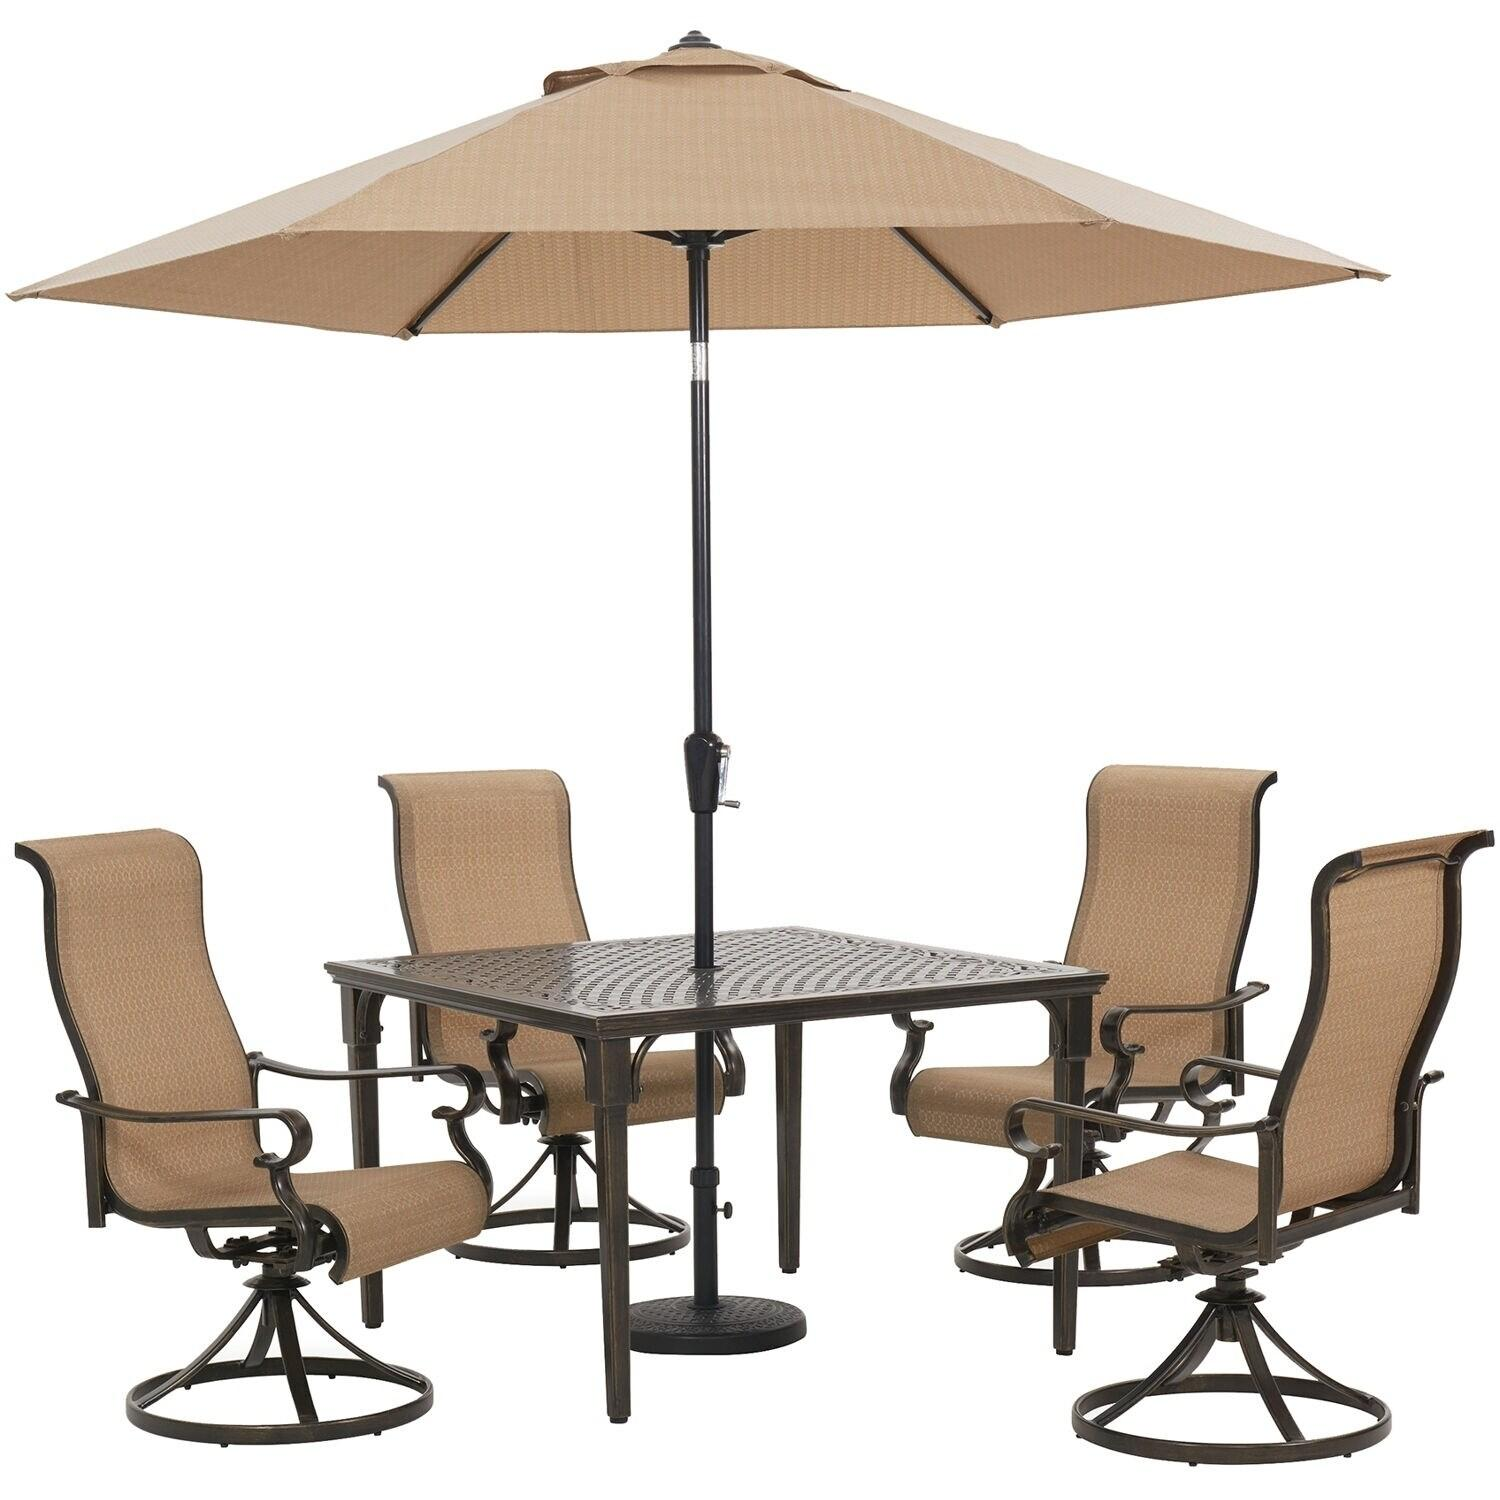 Hanover Brigantine 5-Piece Outdoor Dining Set with 4 Sling Swivel Rockers, 42-In. Square Table, 9-Ft. Umbrella, and Base